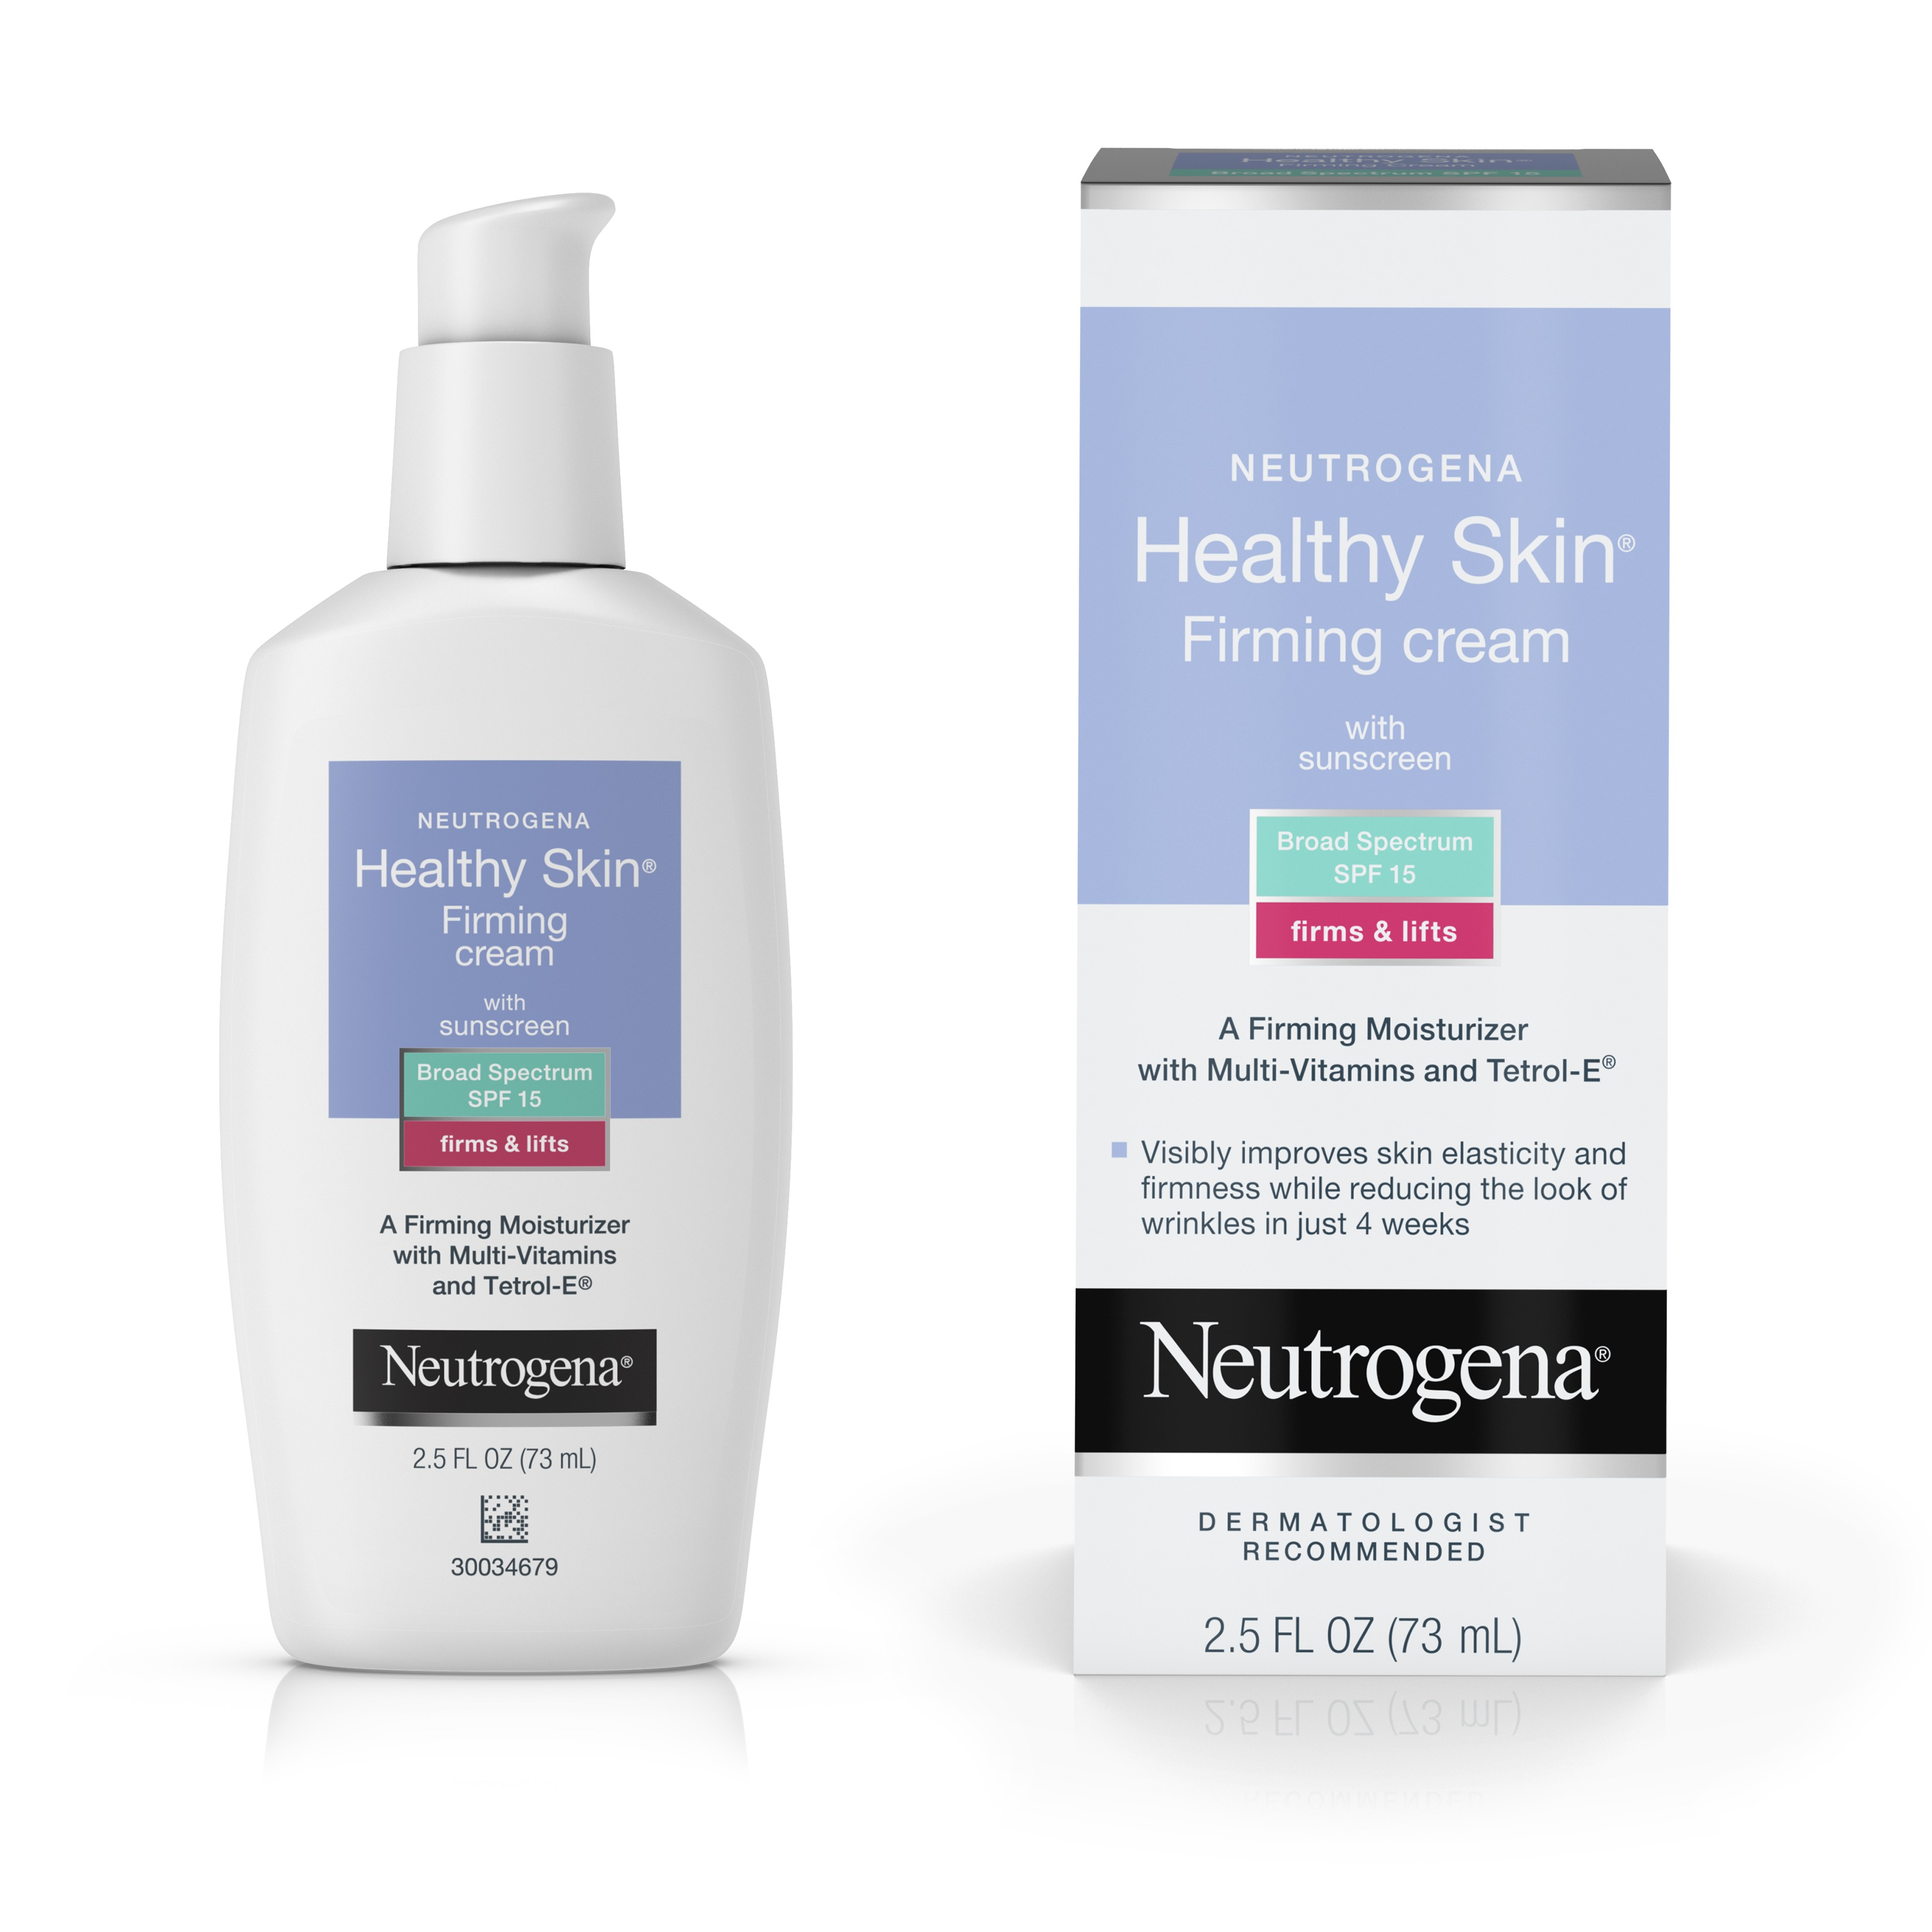 Neutrogena Healthy Skin Firming Face & Neck Cream, SPF 15, 2.5 fl. Oz